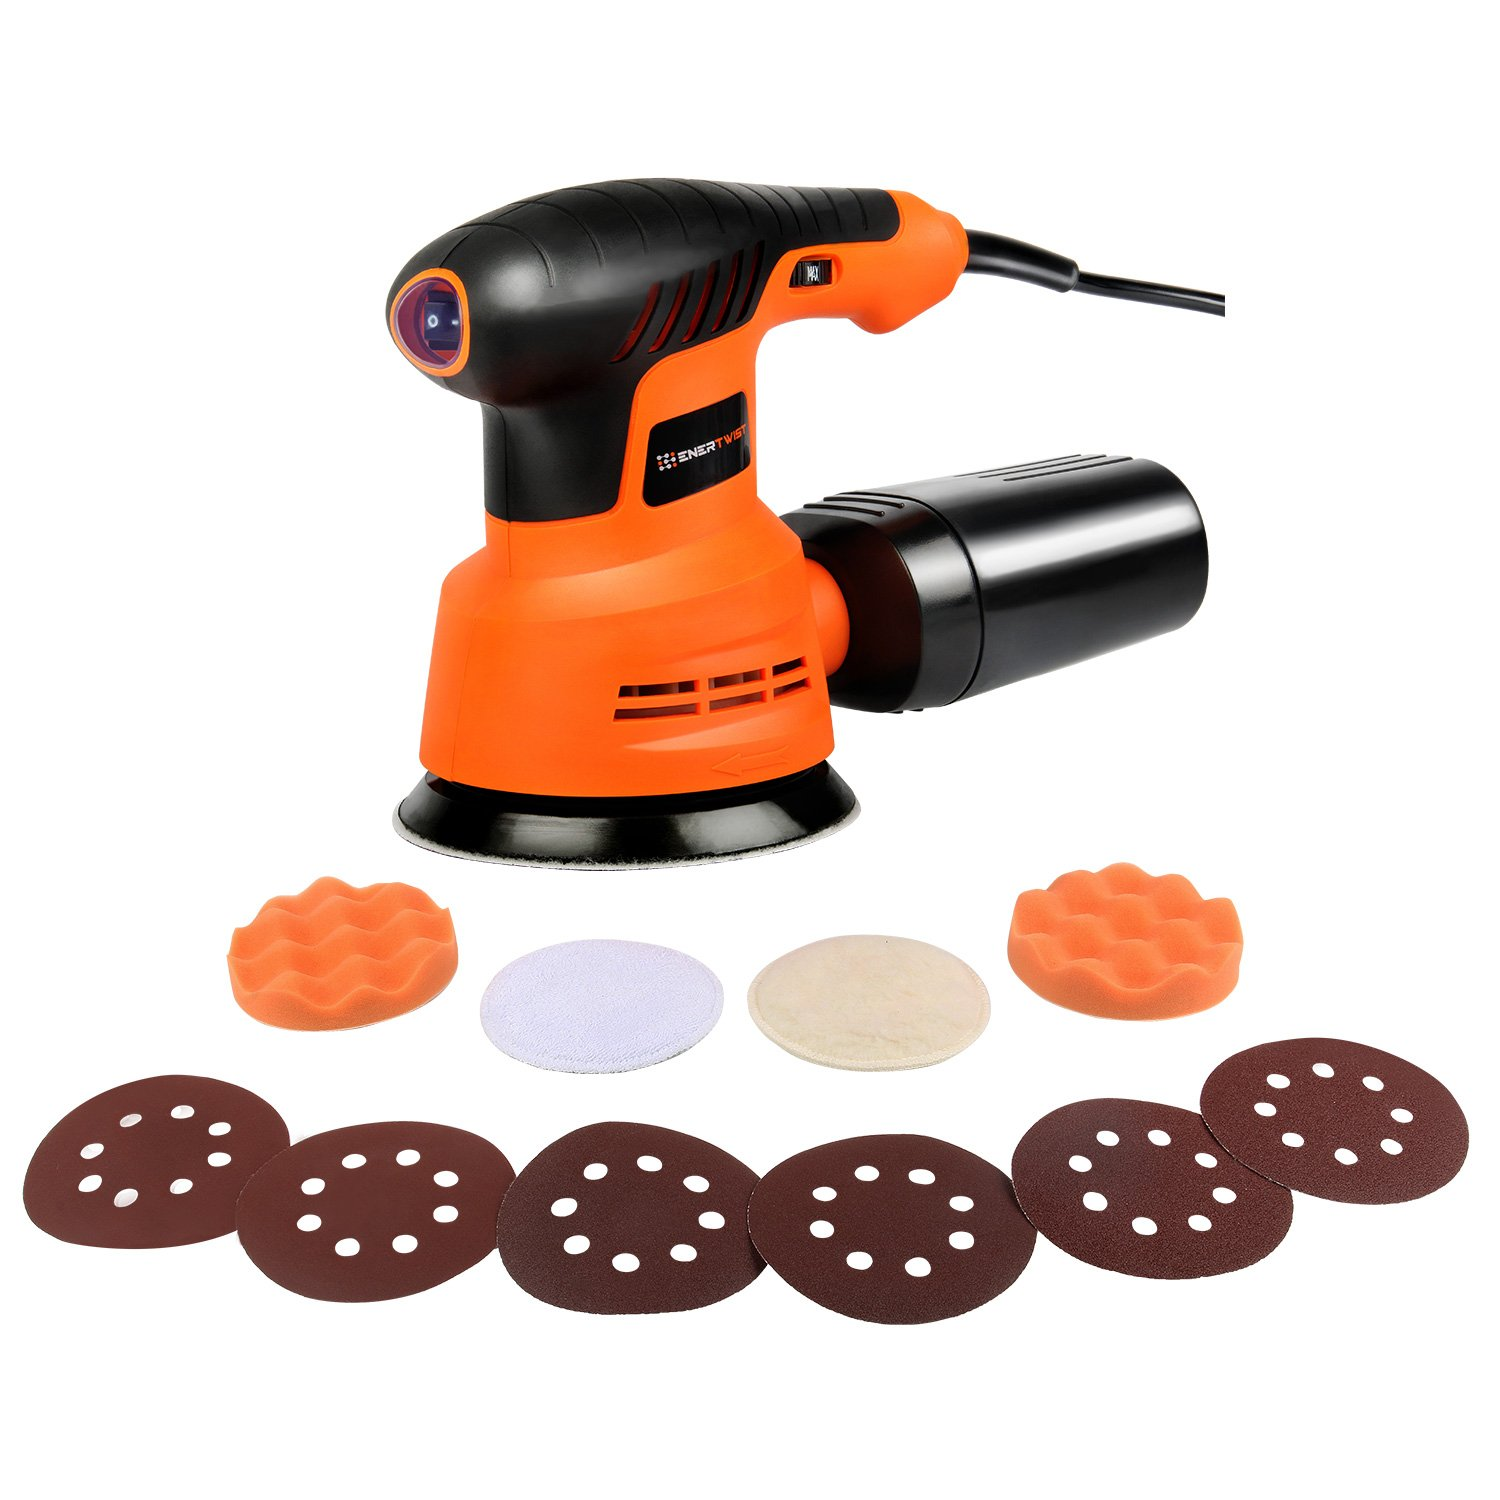 EnerTwist Random Orbit Sander - 5 Inch Variable Speed 2.4A Electric Orbital Sander/Polisher Kit with Dust Collector, ET-OS-280